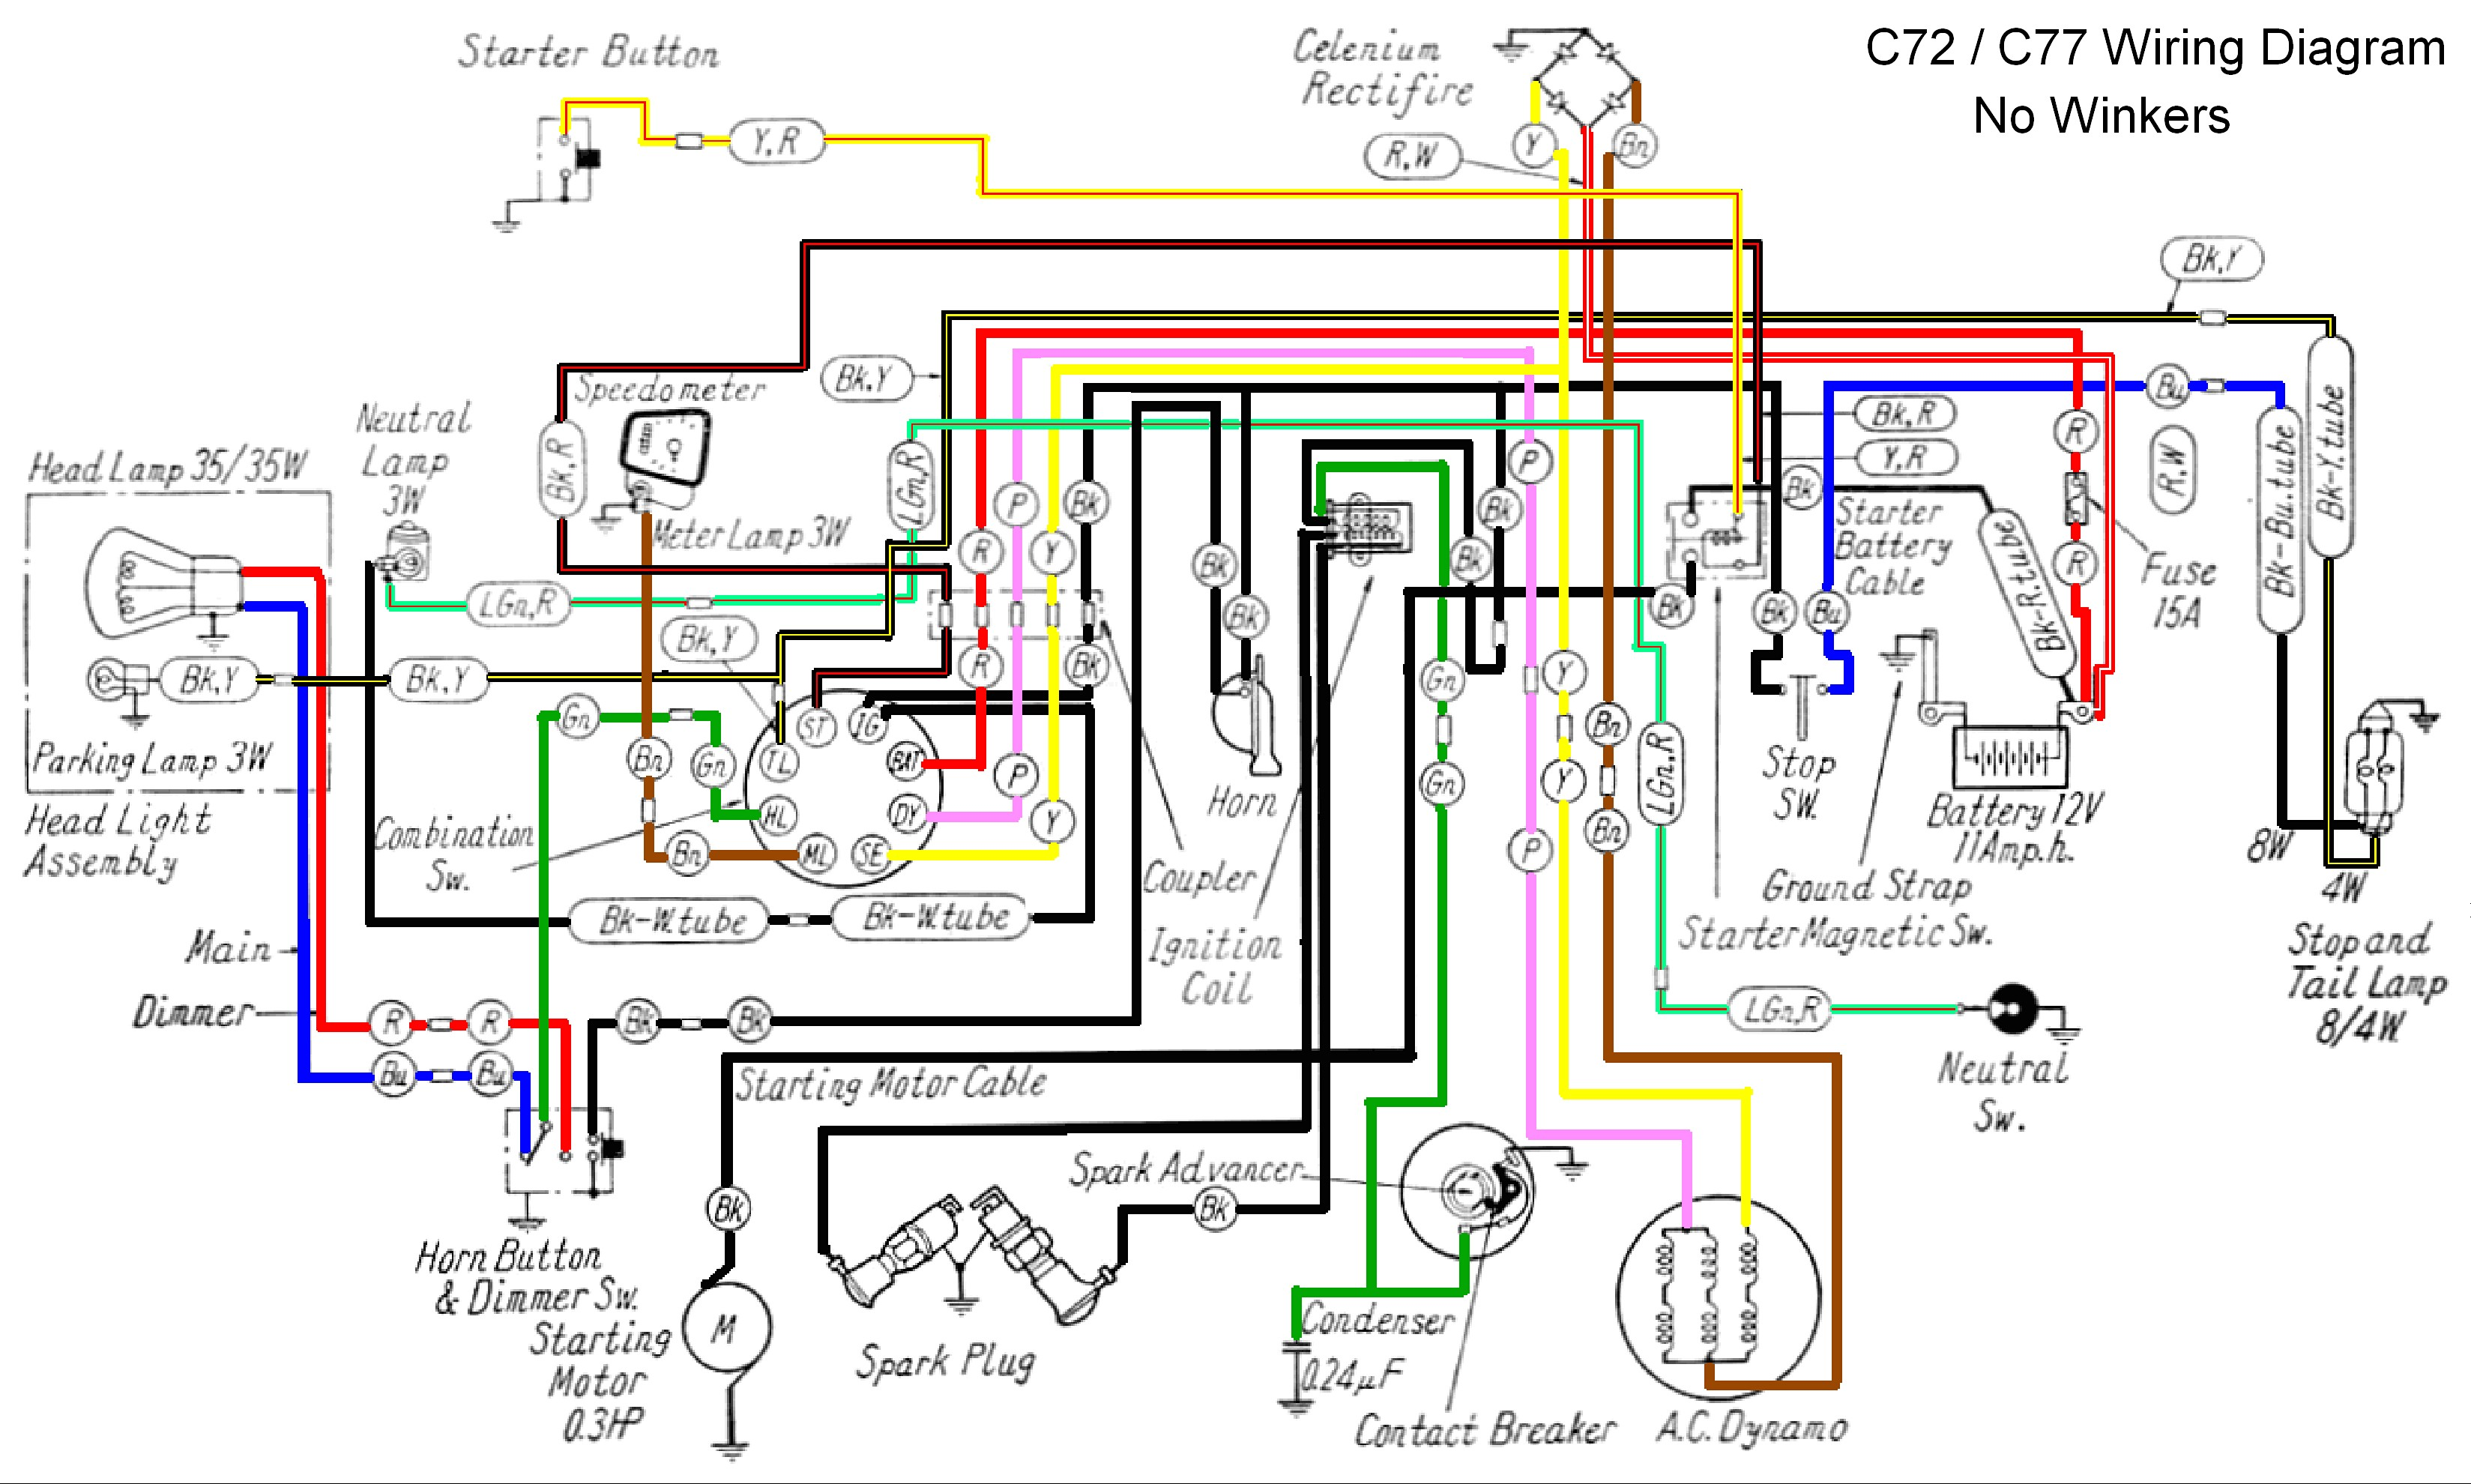 883 2004 wiring diagram wiring library gmc fuse box diagrams harley wiring diagram for dummies detailed [ 3297 x 1980 Pixel ]